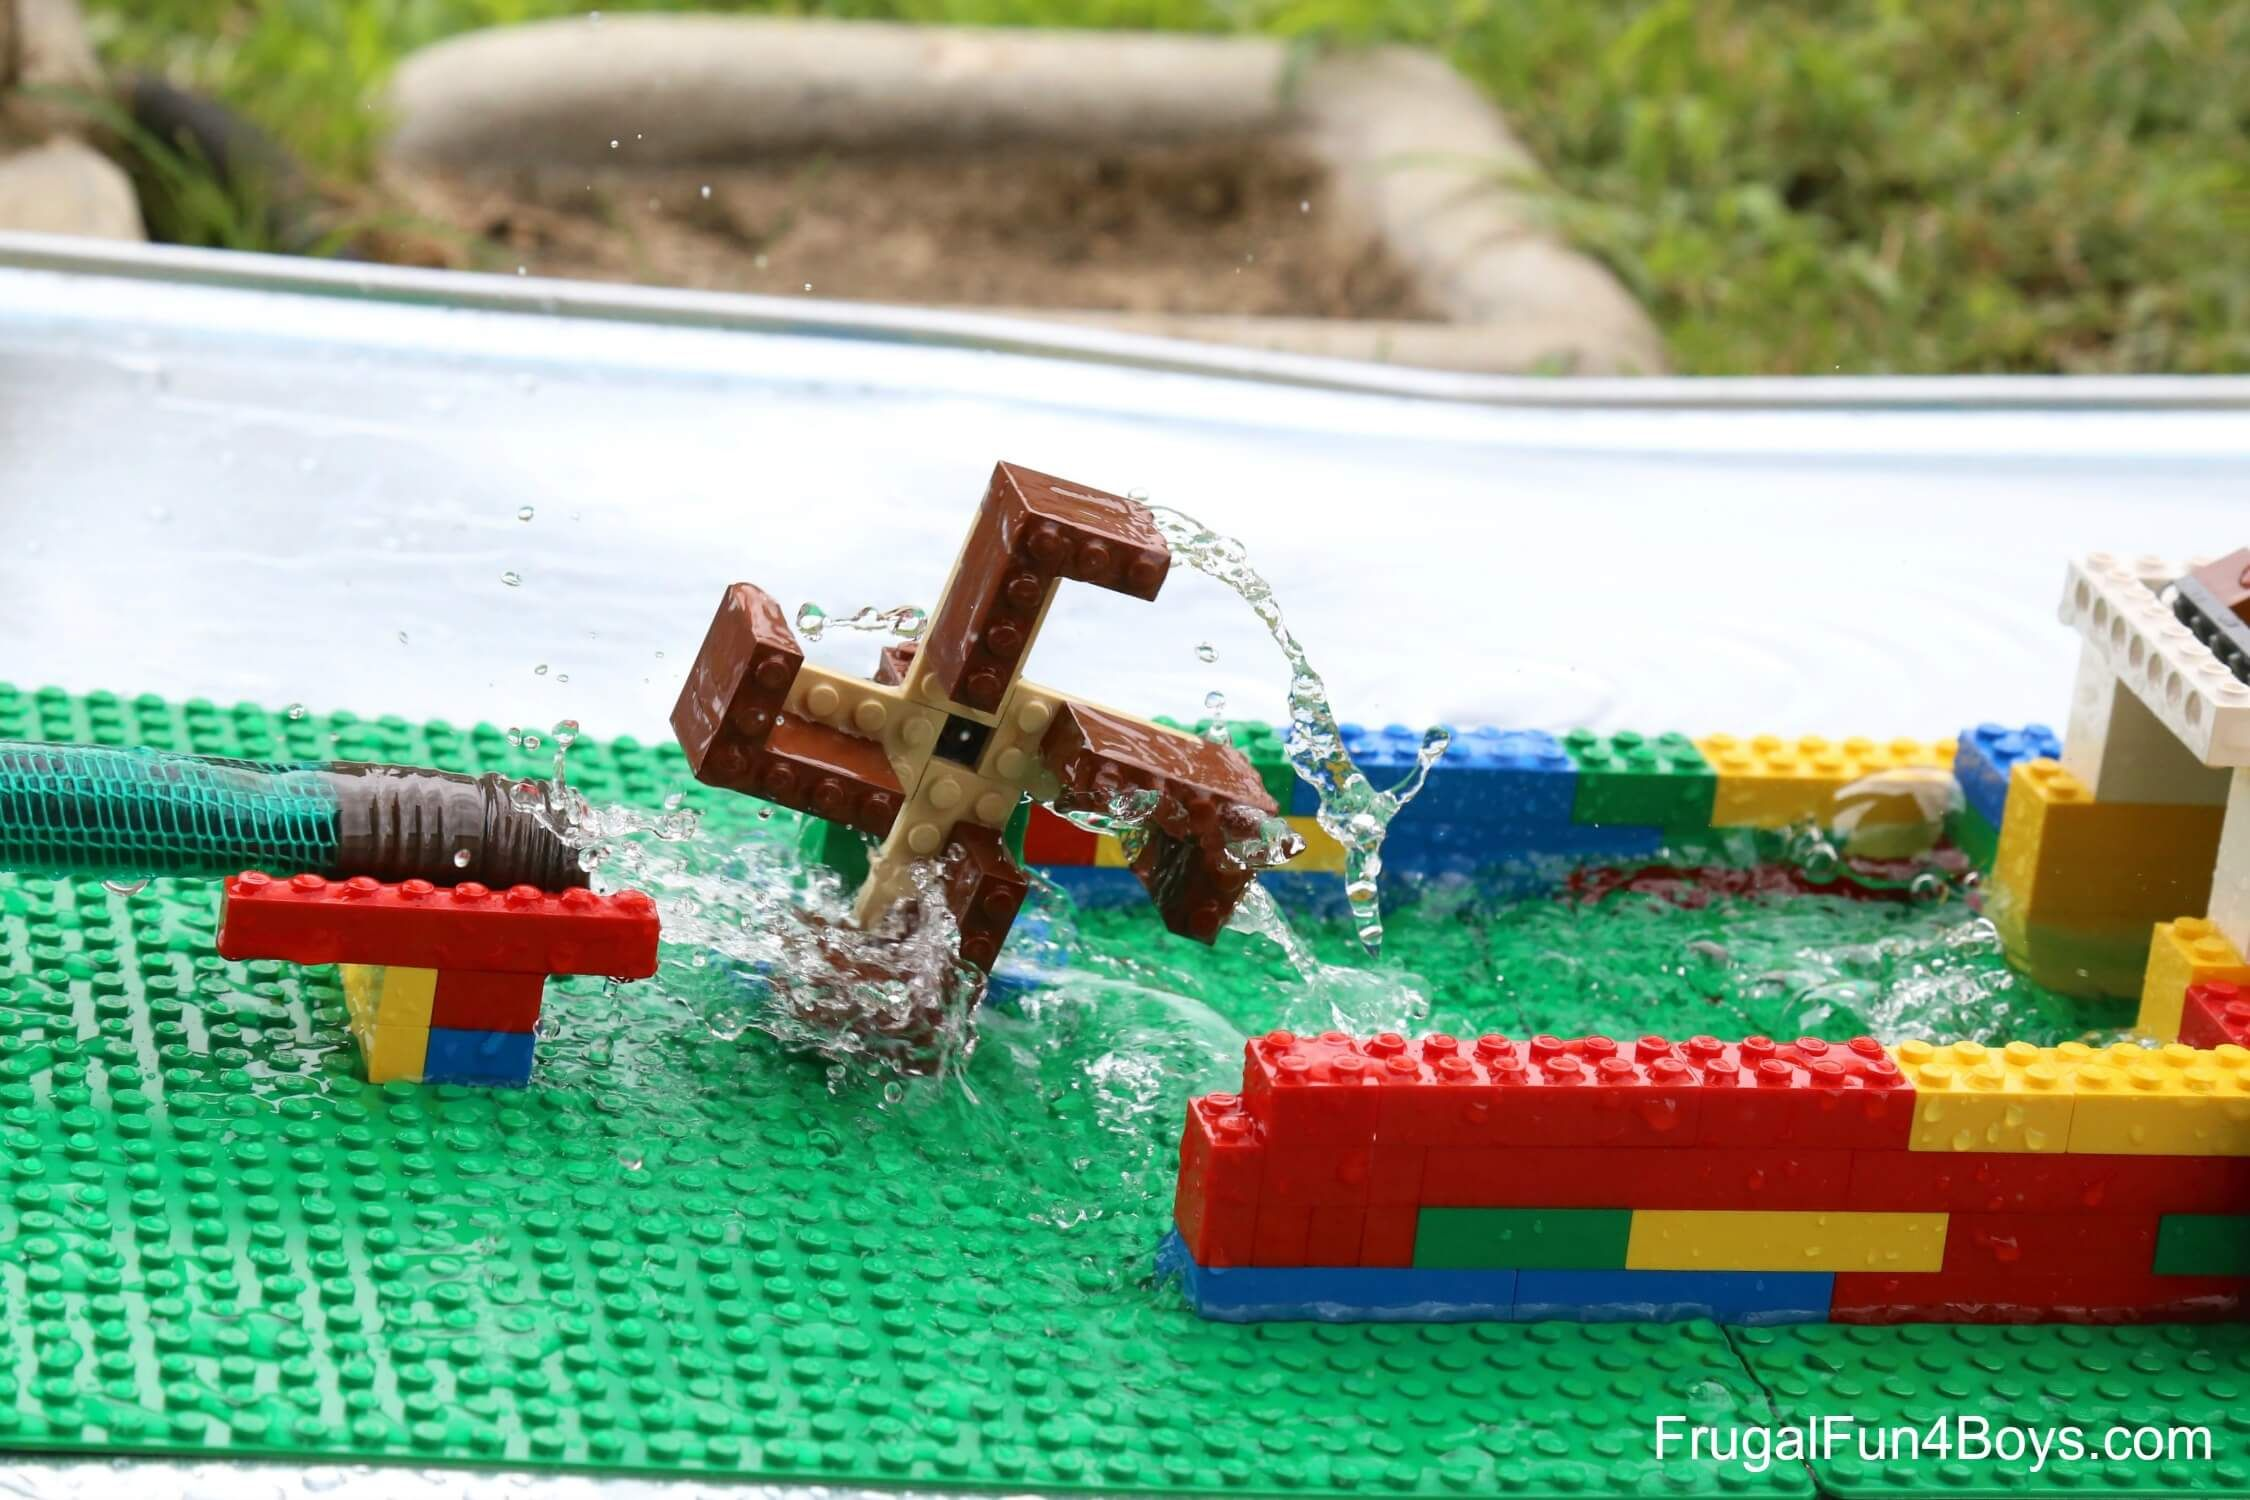 Lego craft ideas diy projects pinterest lego craft diy art diy decor ideas find the most creative lego craft ideas that anyone can do it yourself in free time show your diy skills by creating lego crafts solutioingenieria Gallery